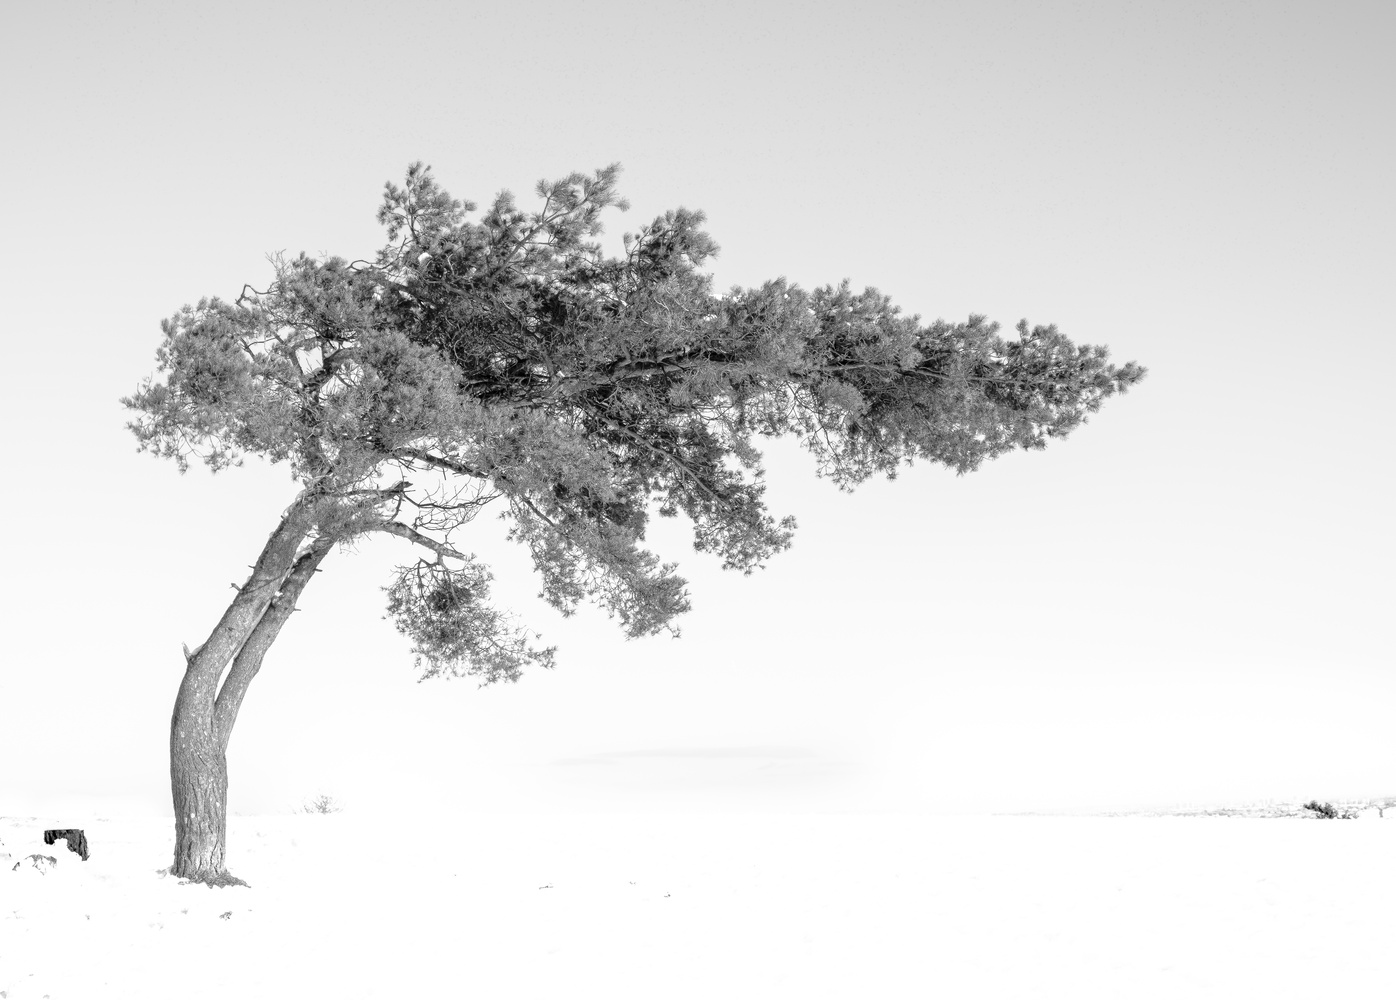 Beauty in isolation by andrew audley